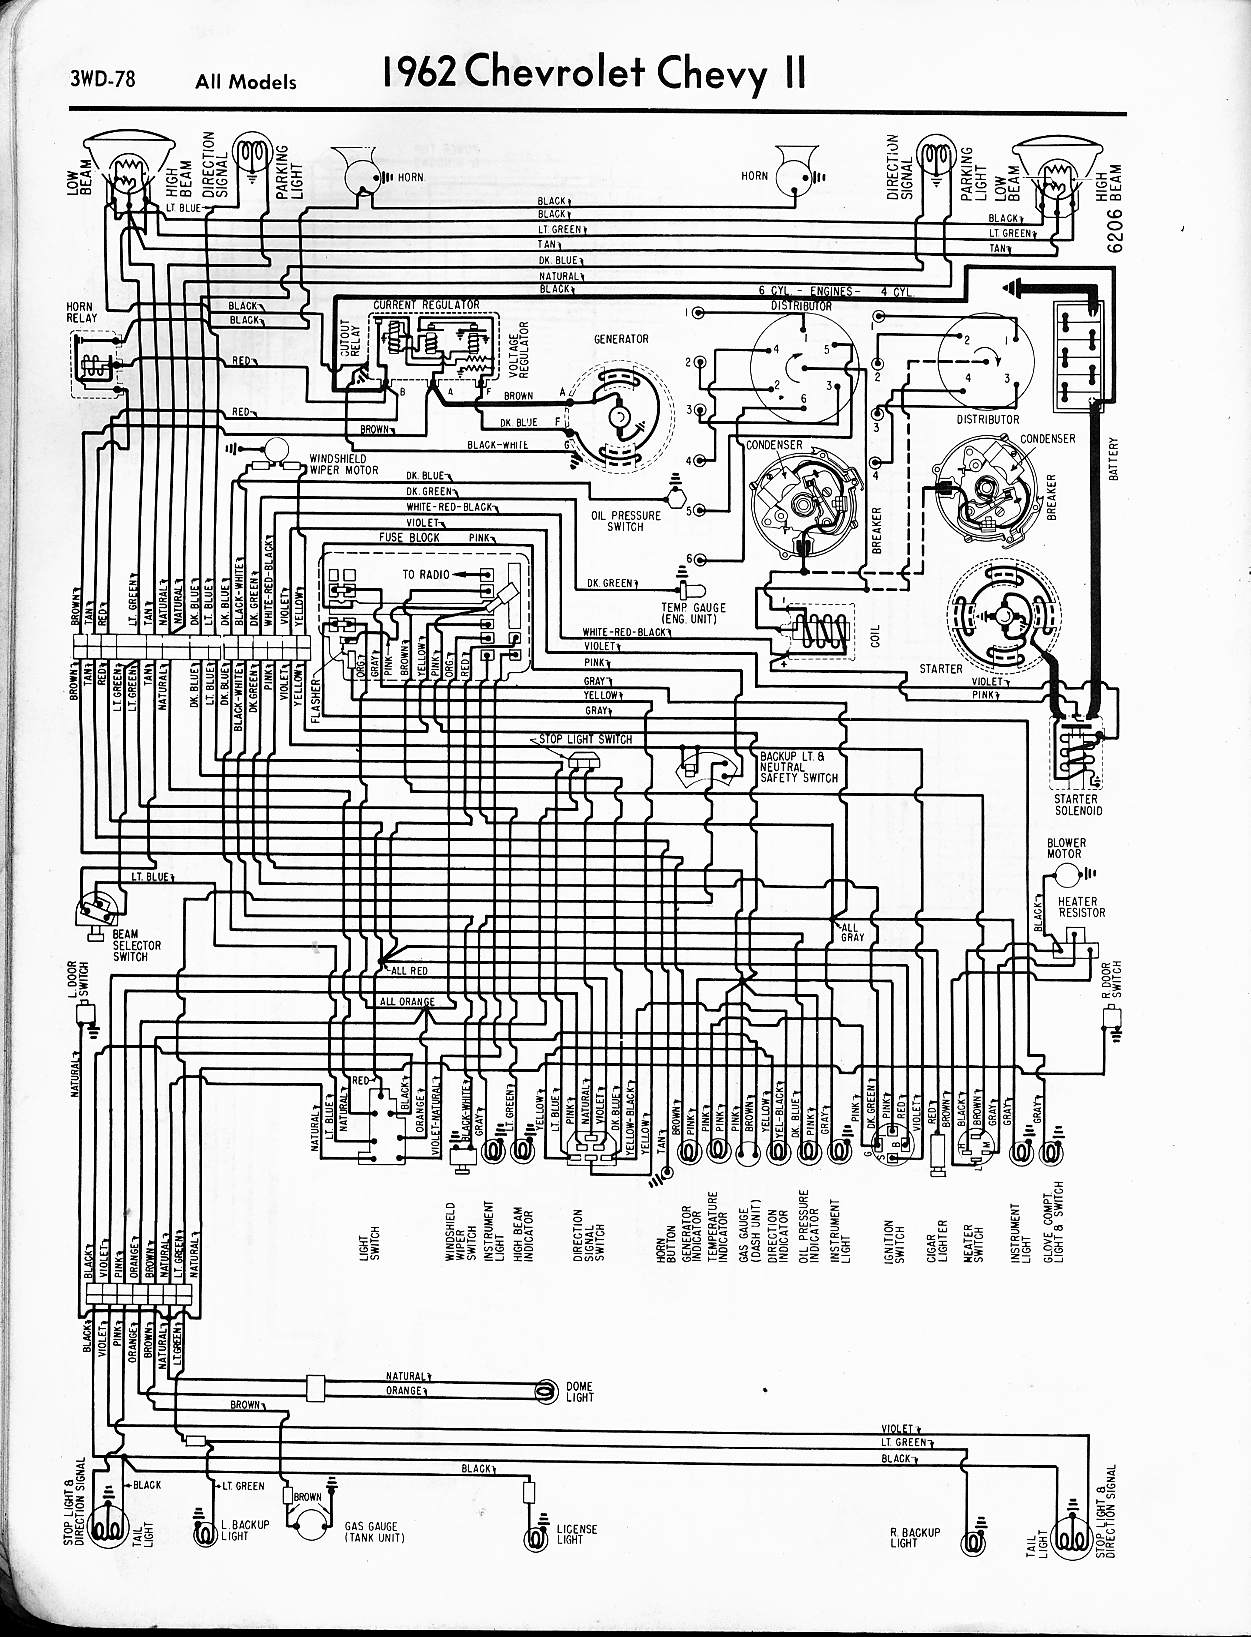 with chevy wiper motor wiring diagram on 1963 nova wiring diagram rh totalnutritiontampa com 1967 Camaro Wiring Diagram 1968 Chevy Impala Wiring Diagram